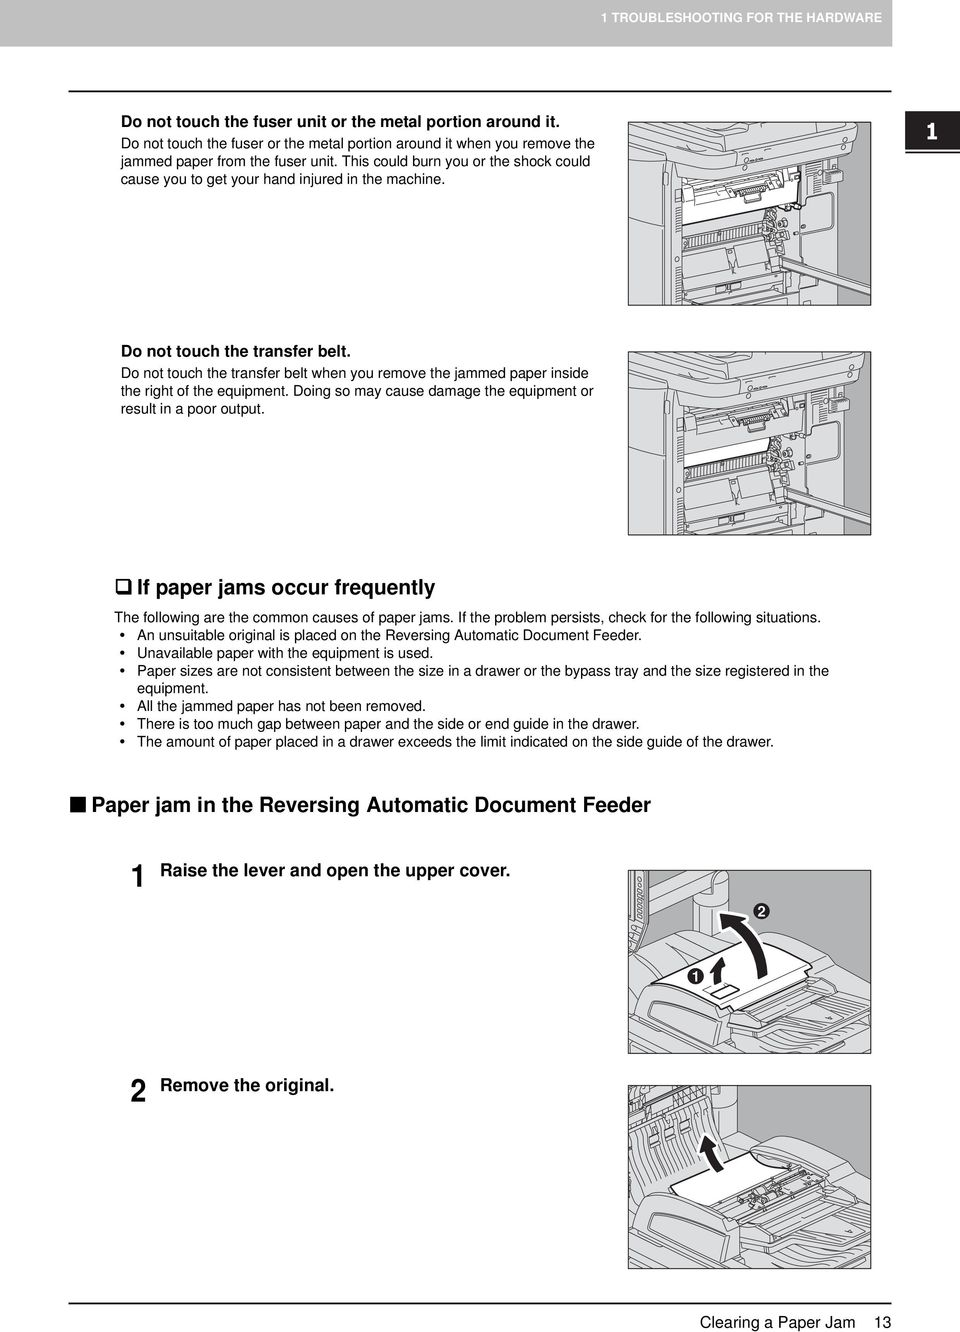 Do not touch the transfer belt. Do not touch the transfer belt when you remove the jammed paper inside the right of the equipment. Doing so may cause damage the equipment or result in a poor output.